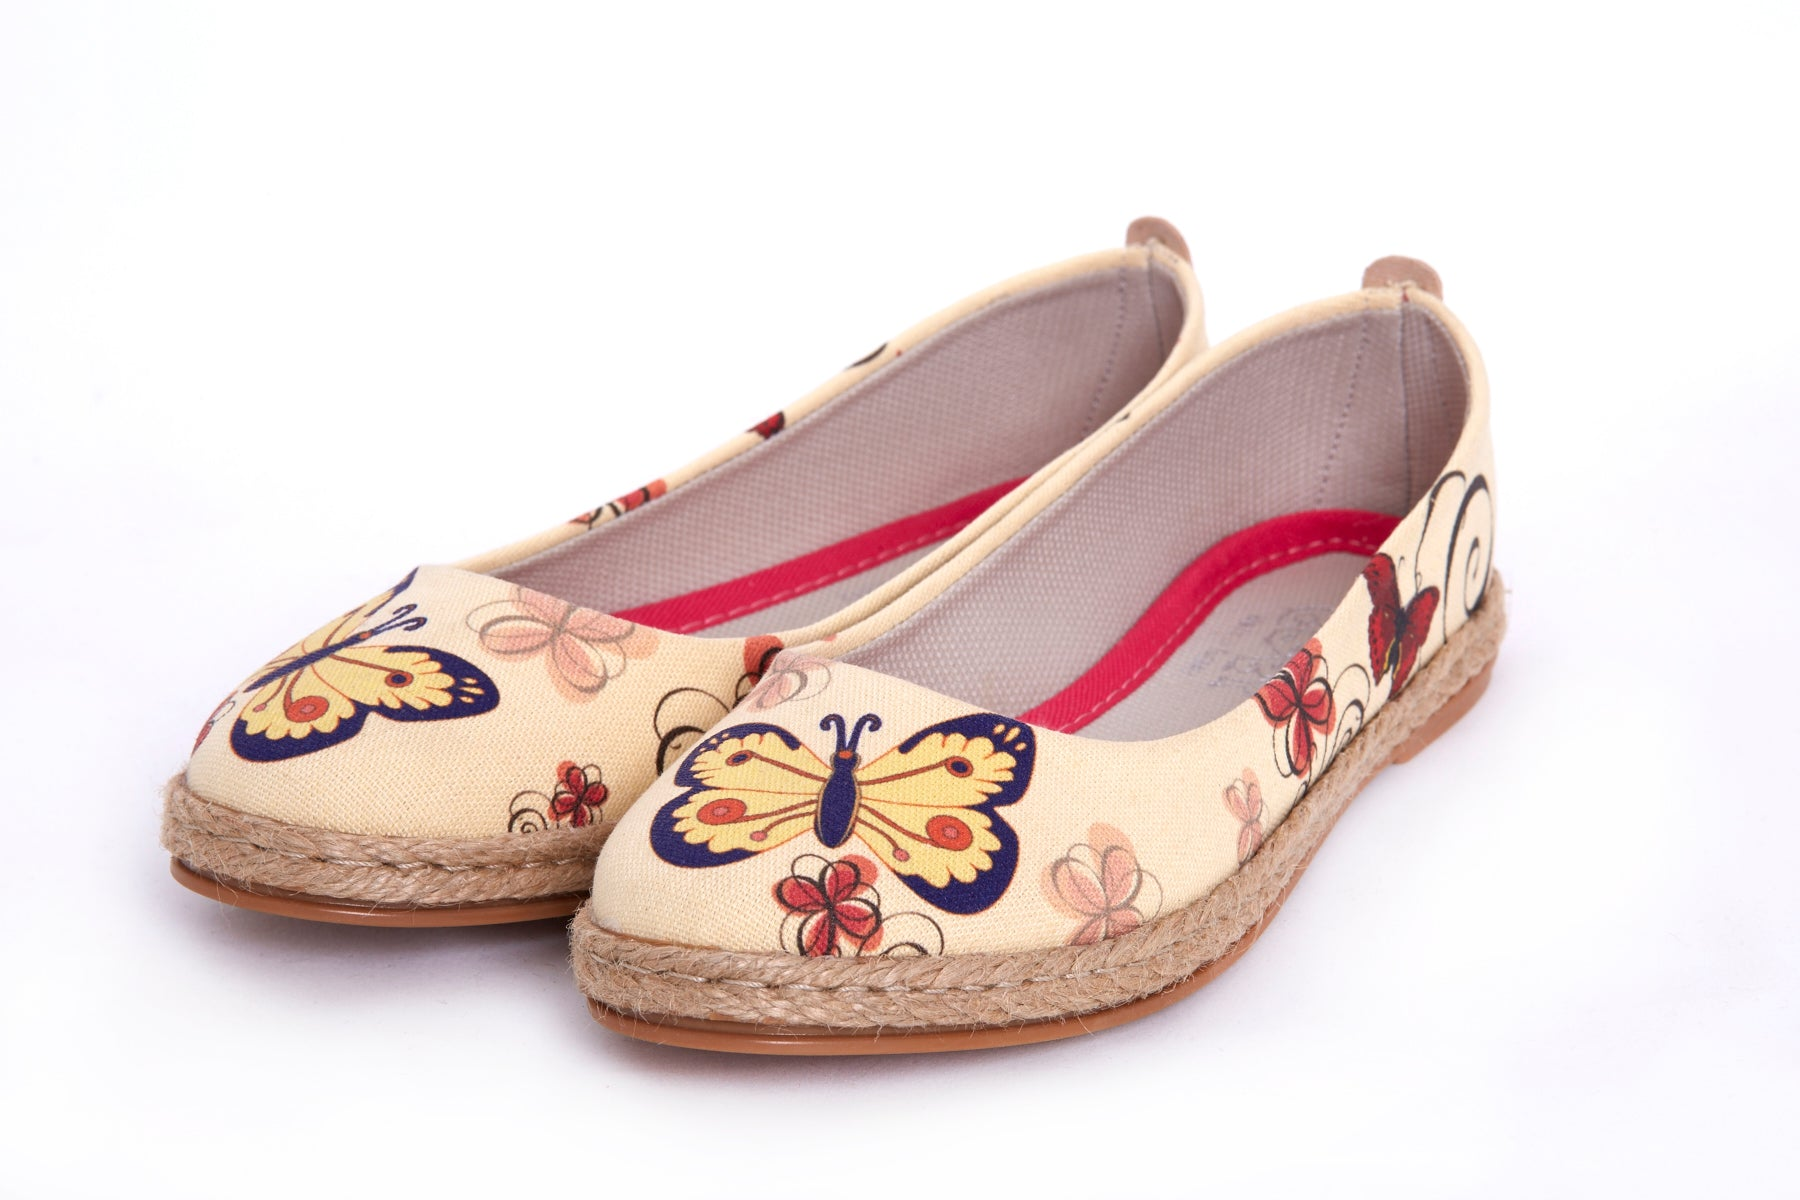 Goby Butterfly Ballerinas Shoes FBR1208